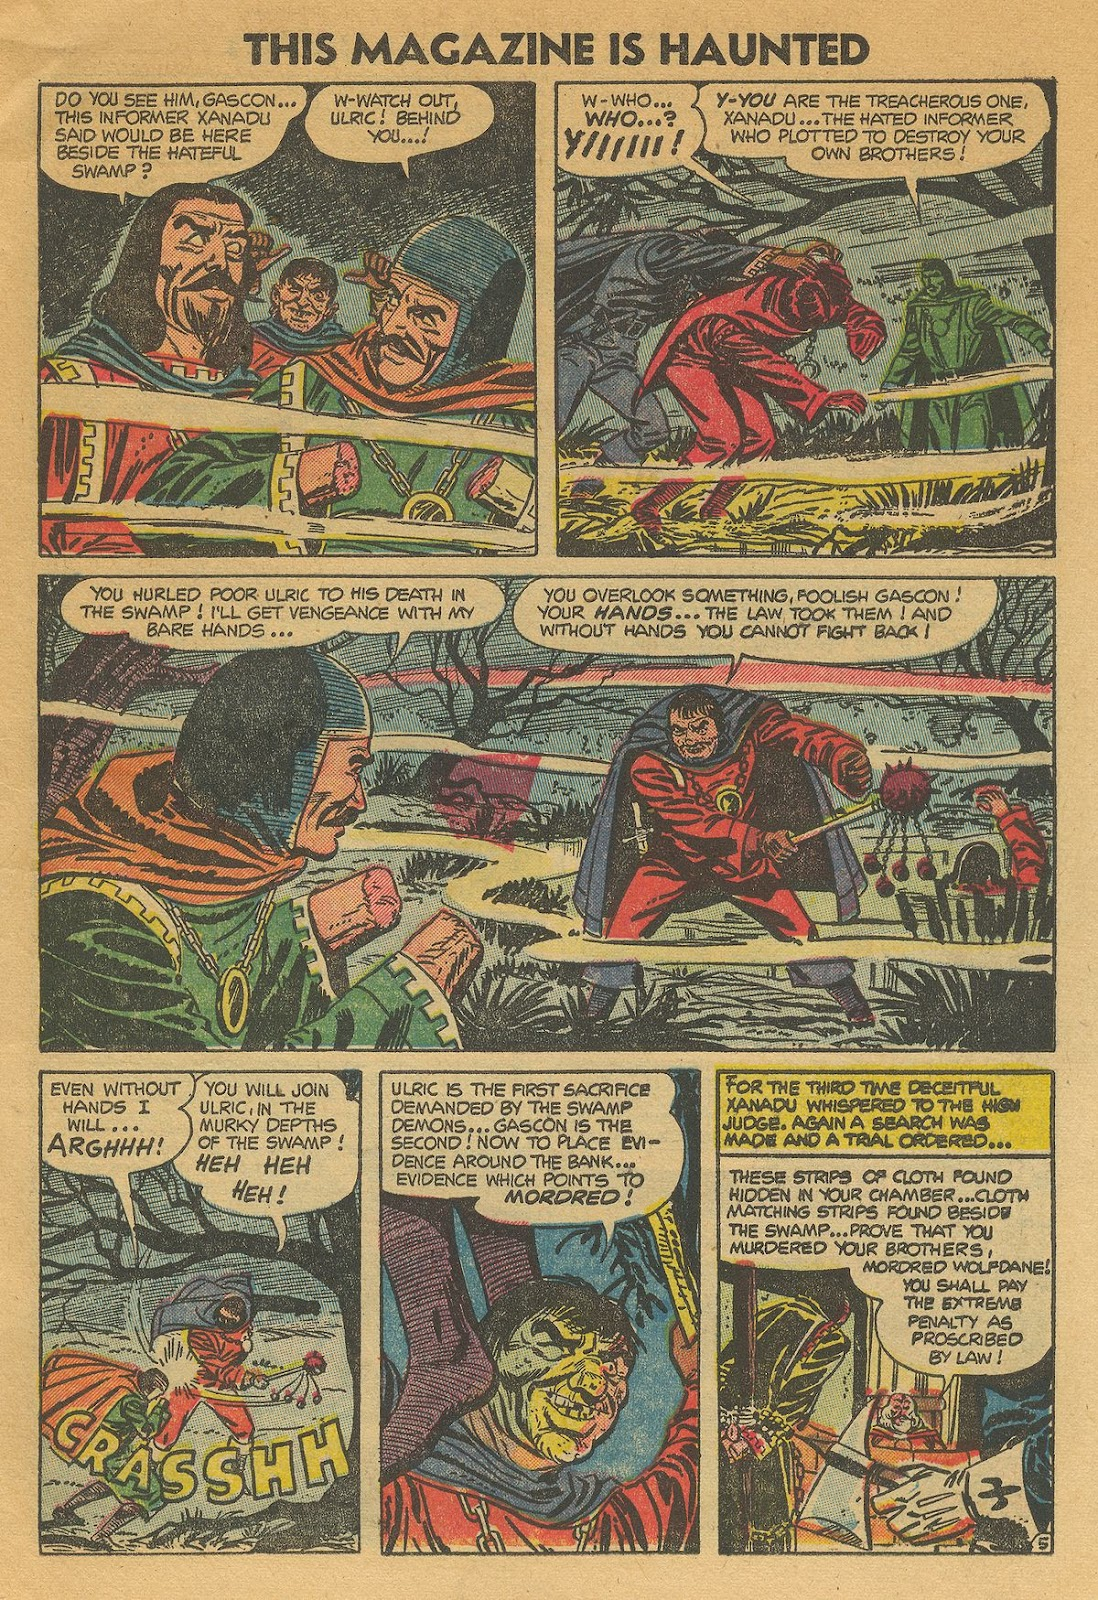 Read online This Magazine Is Haunted comic -  Issue #18 - 7